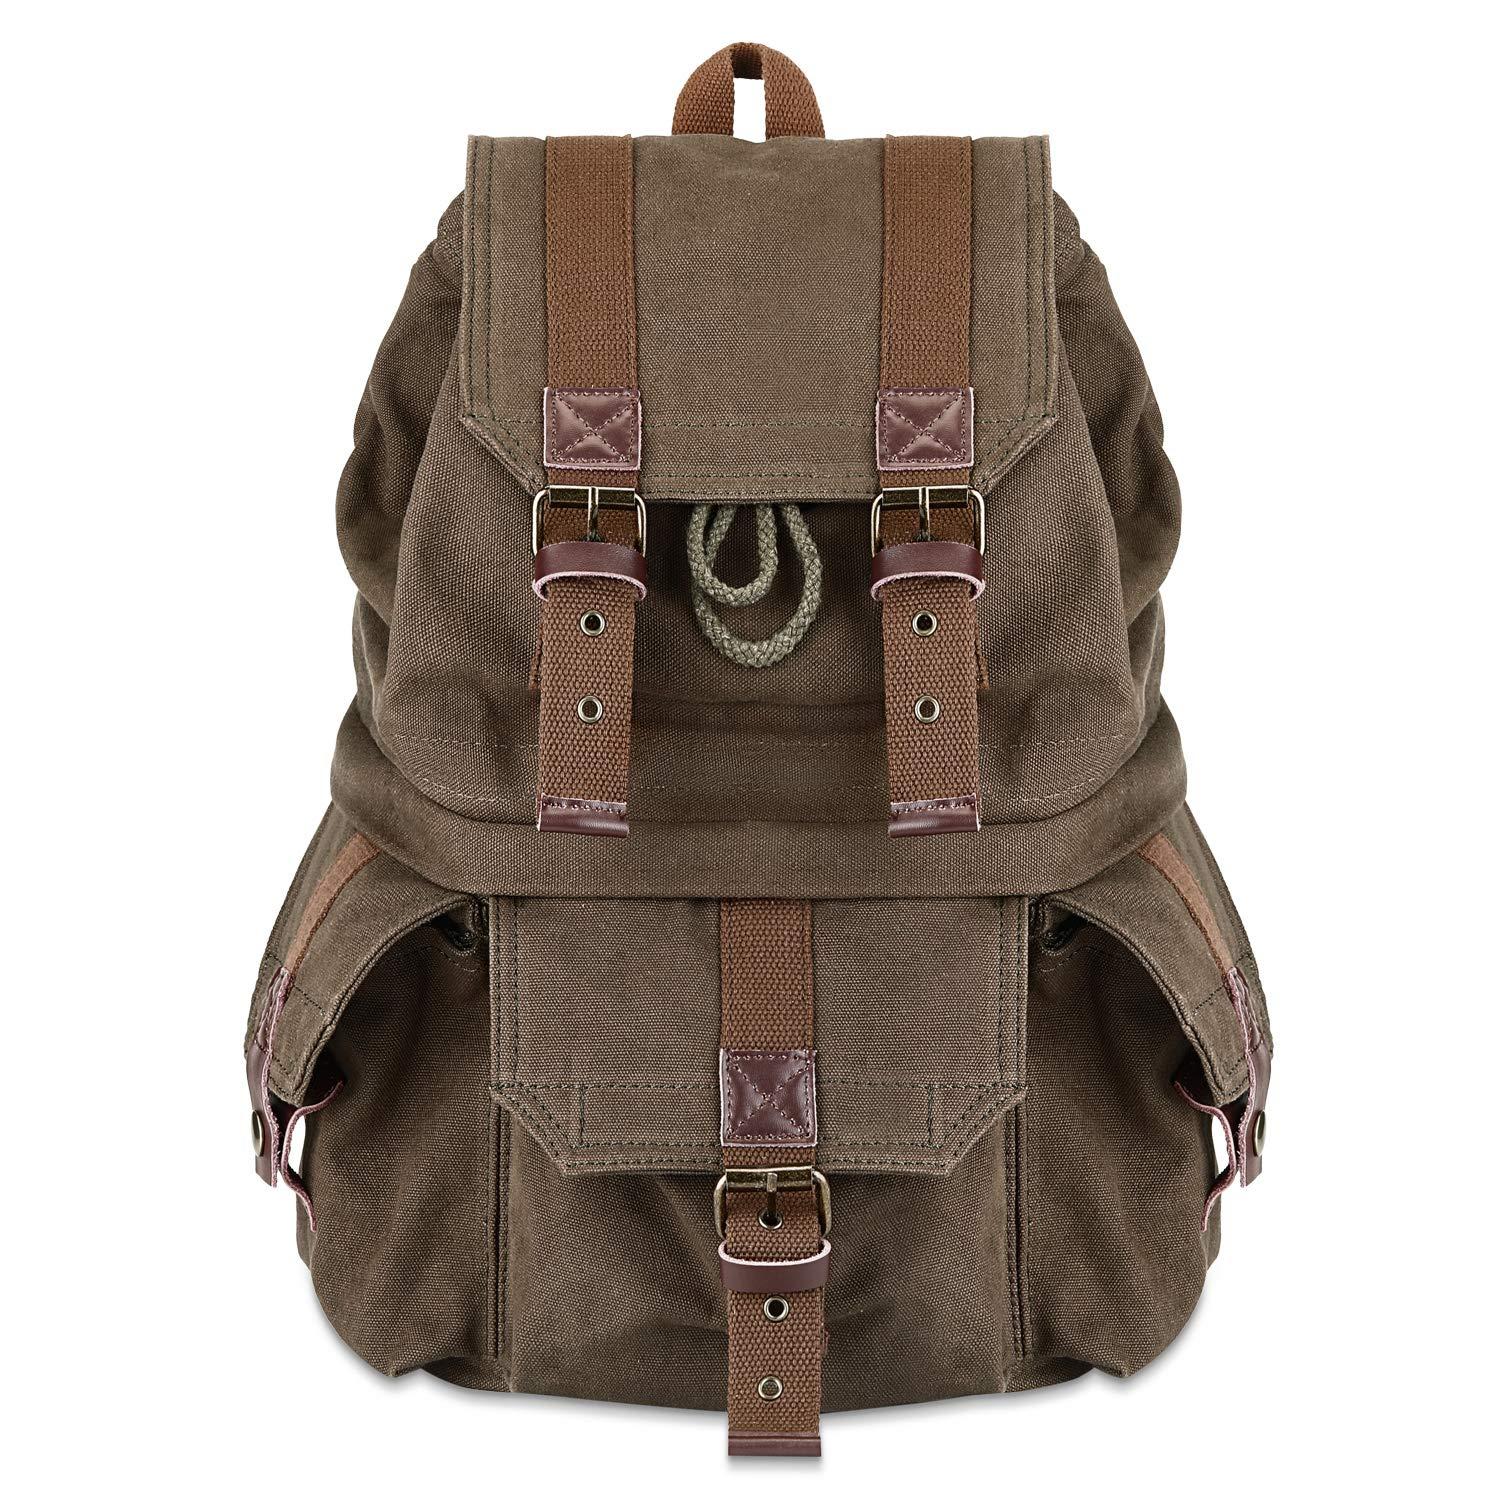 Kattee Military Style DSLR Backpack